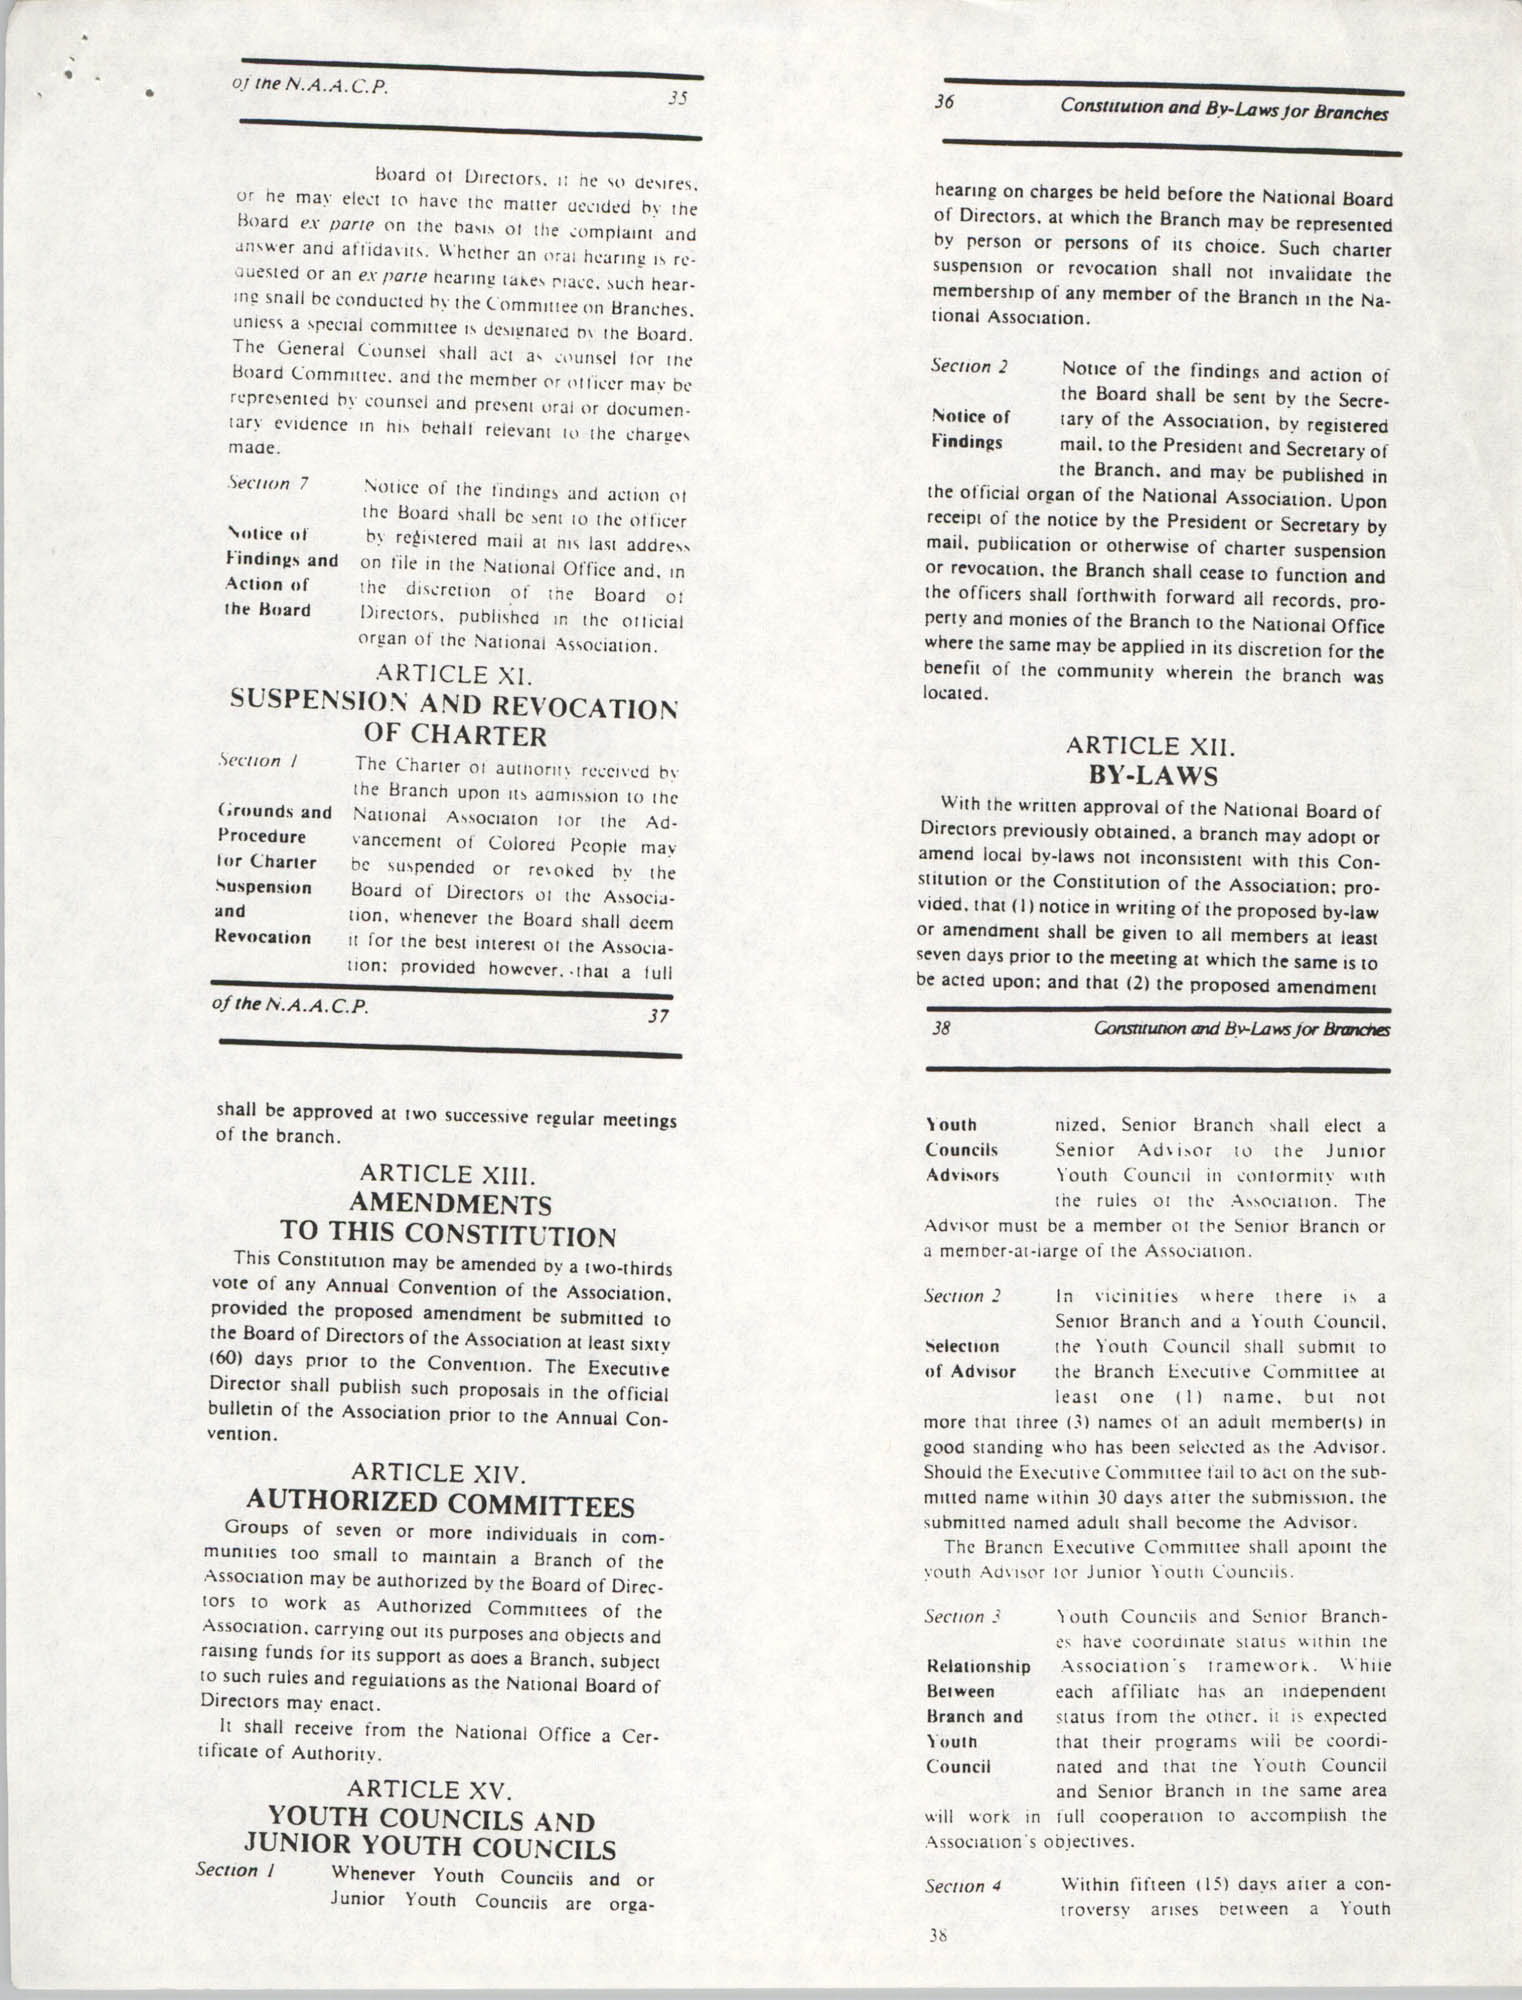 Constitution and By-Laws for Branches of the NAACP, May 1988, Pages 35-38